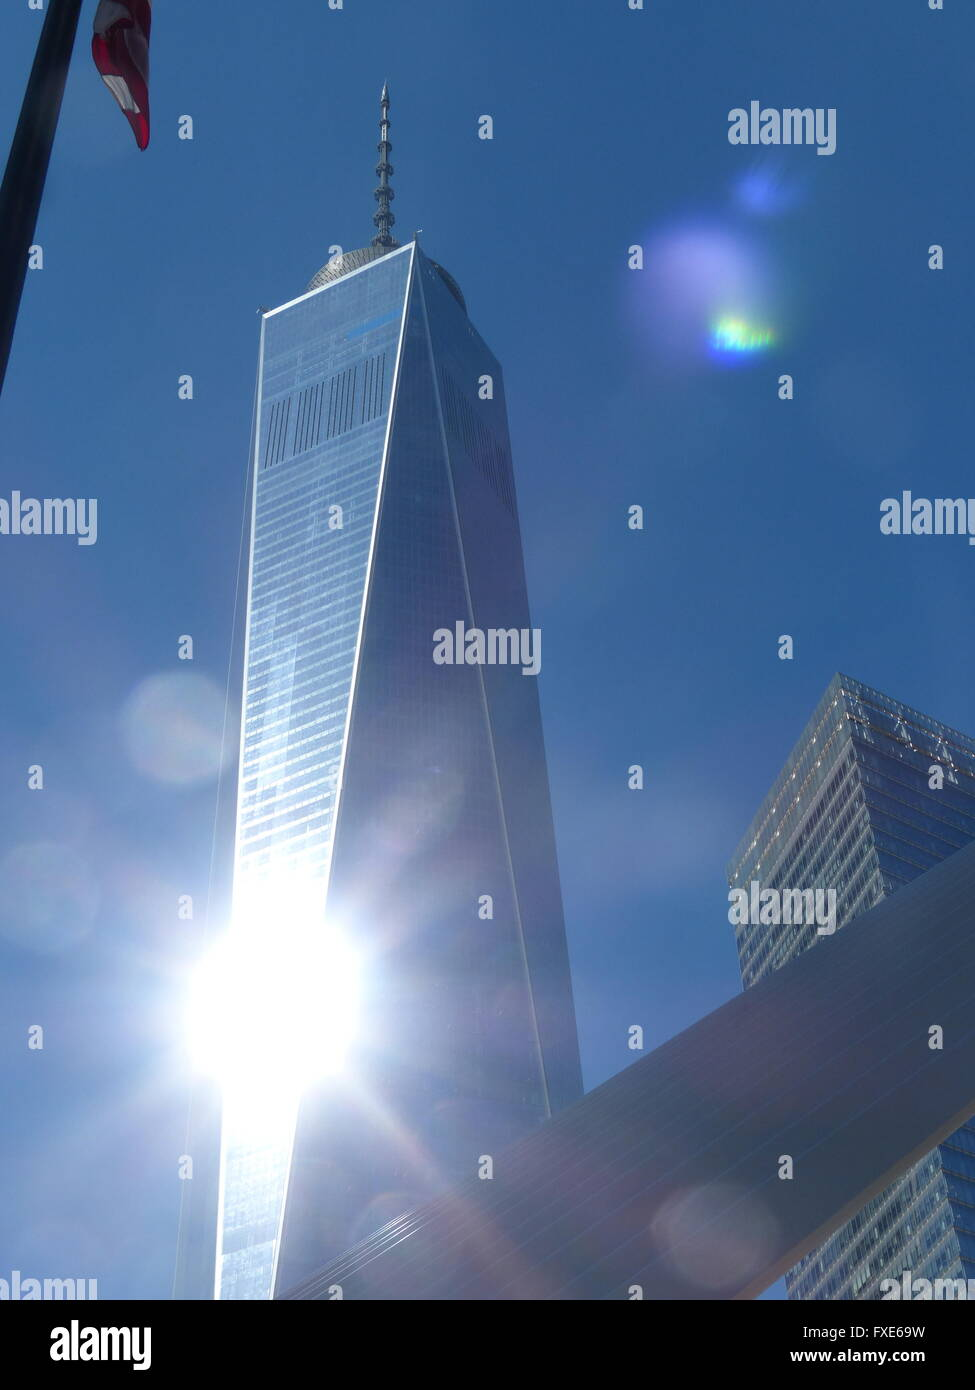 El One World Trade Center, antigua torre de la libertad, diseñado por el arquitecto David Childs Imagen De Stock